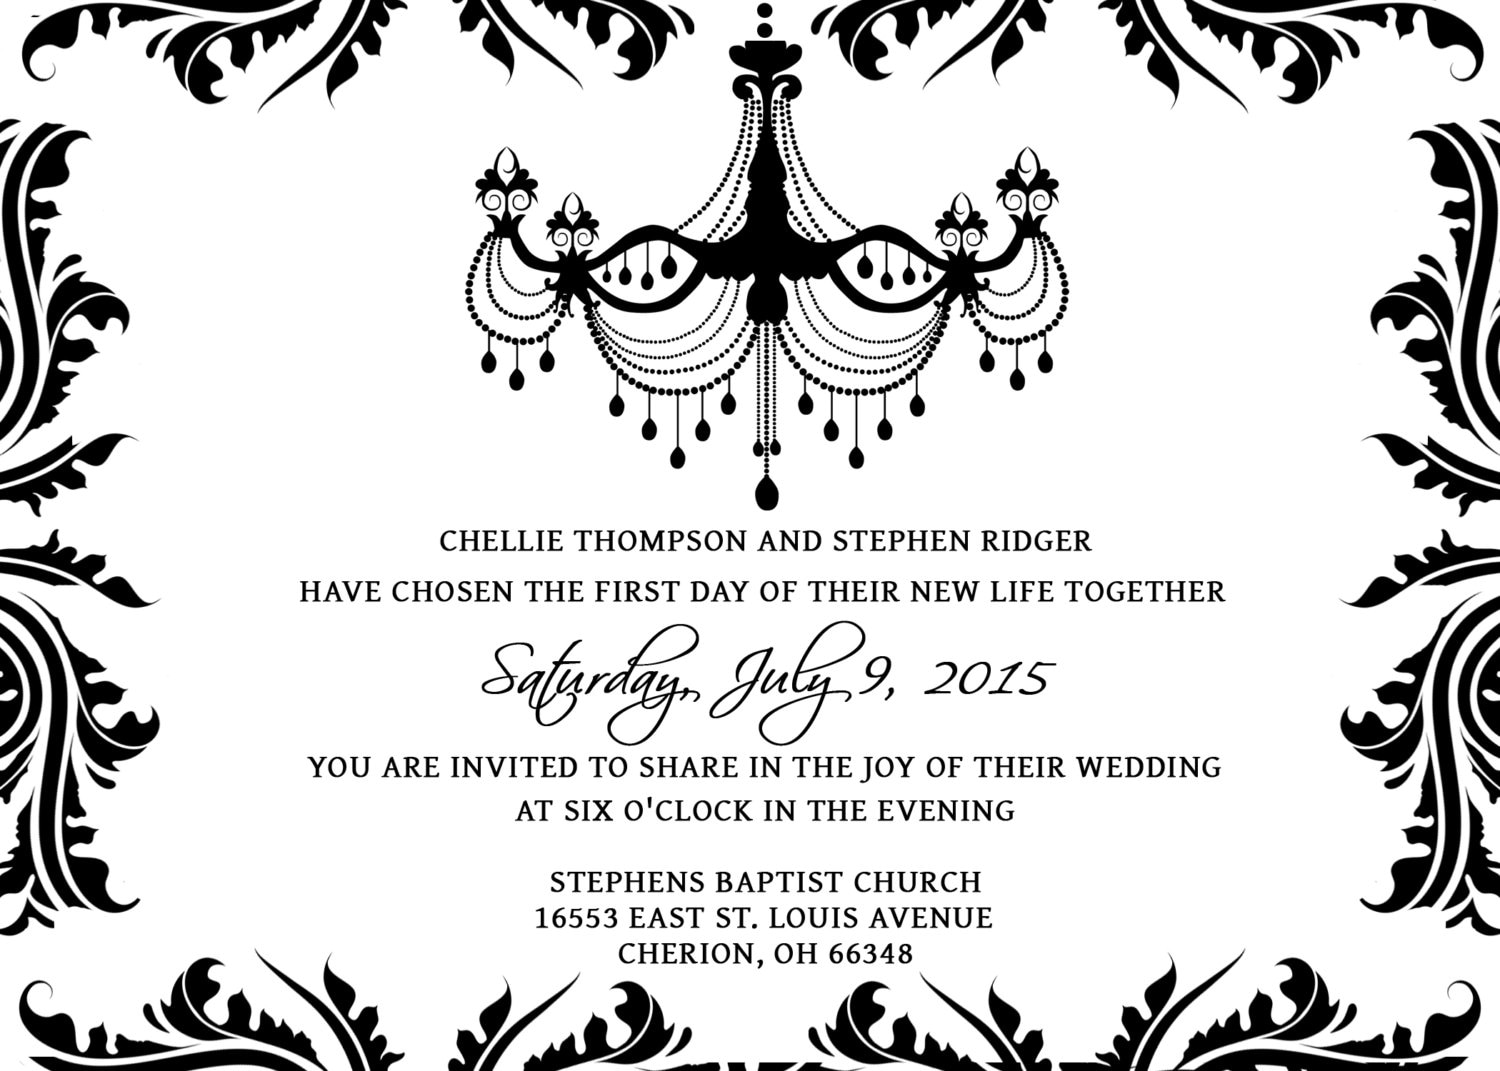 Wedding Invitations Template Set PSD Photoshop Gimp